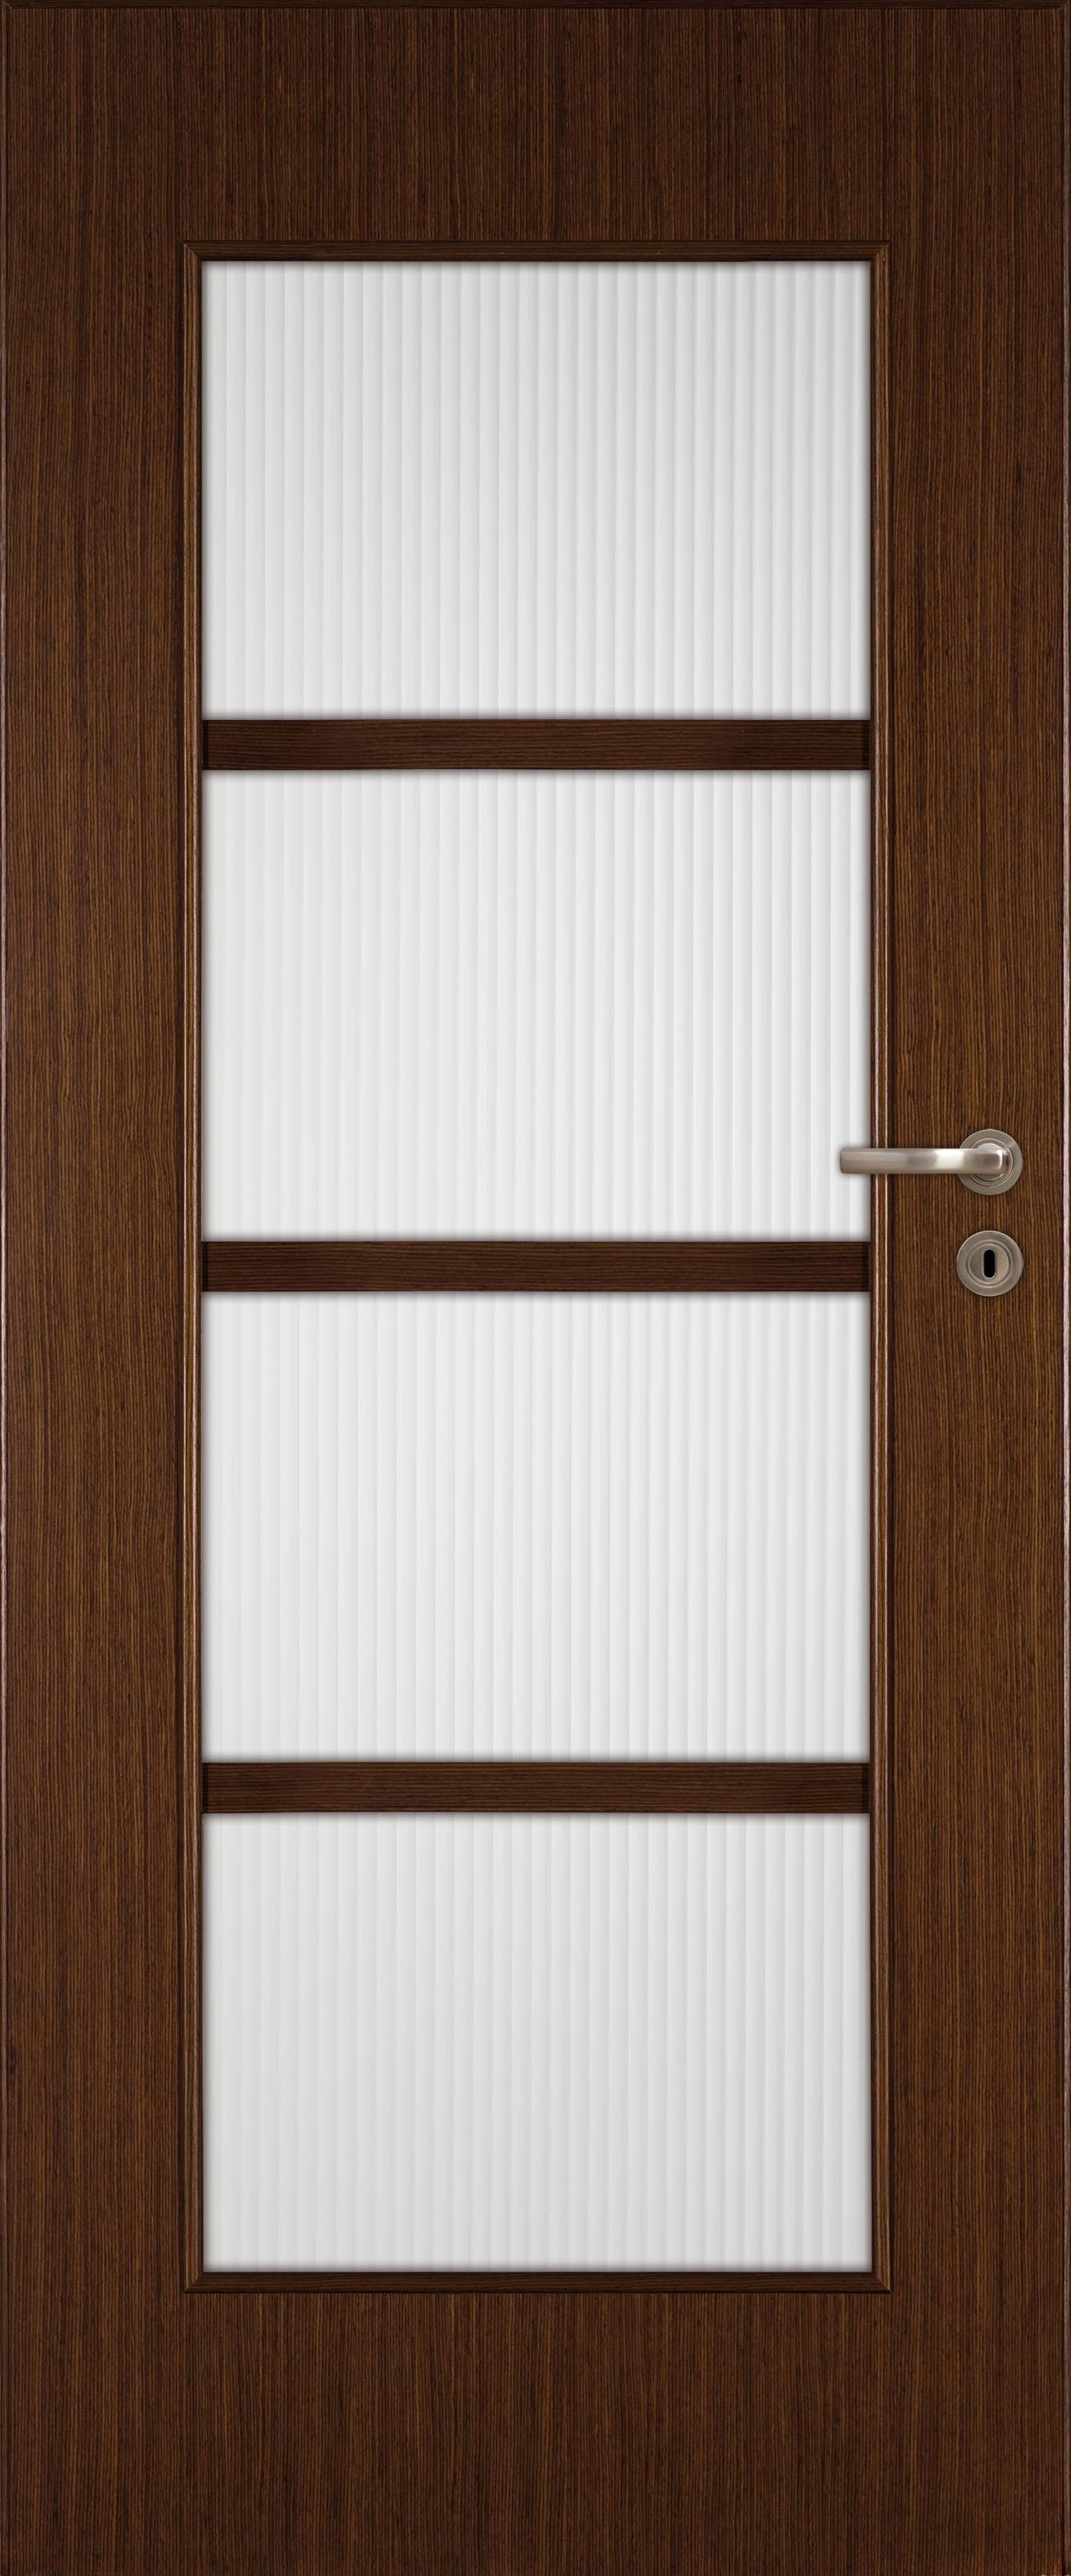 Dark wooden door in a modern style with four light-colored frosted glass